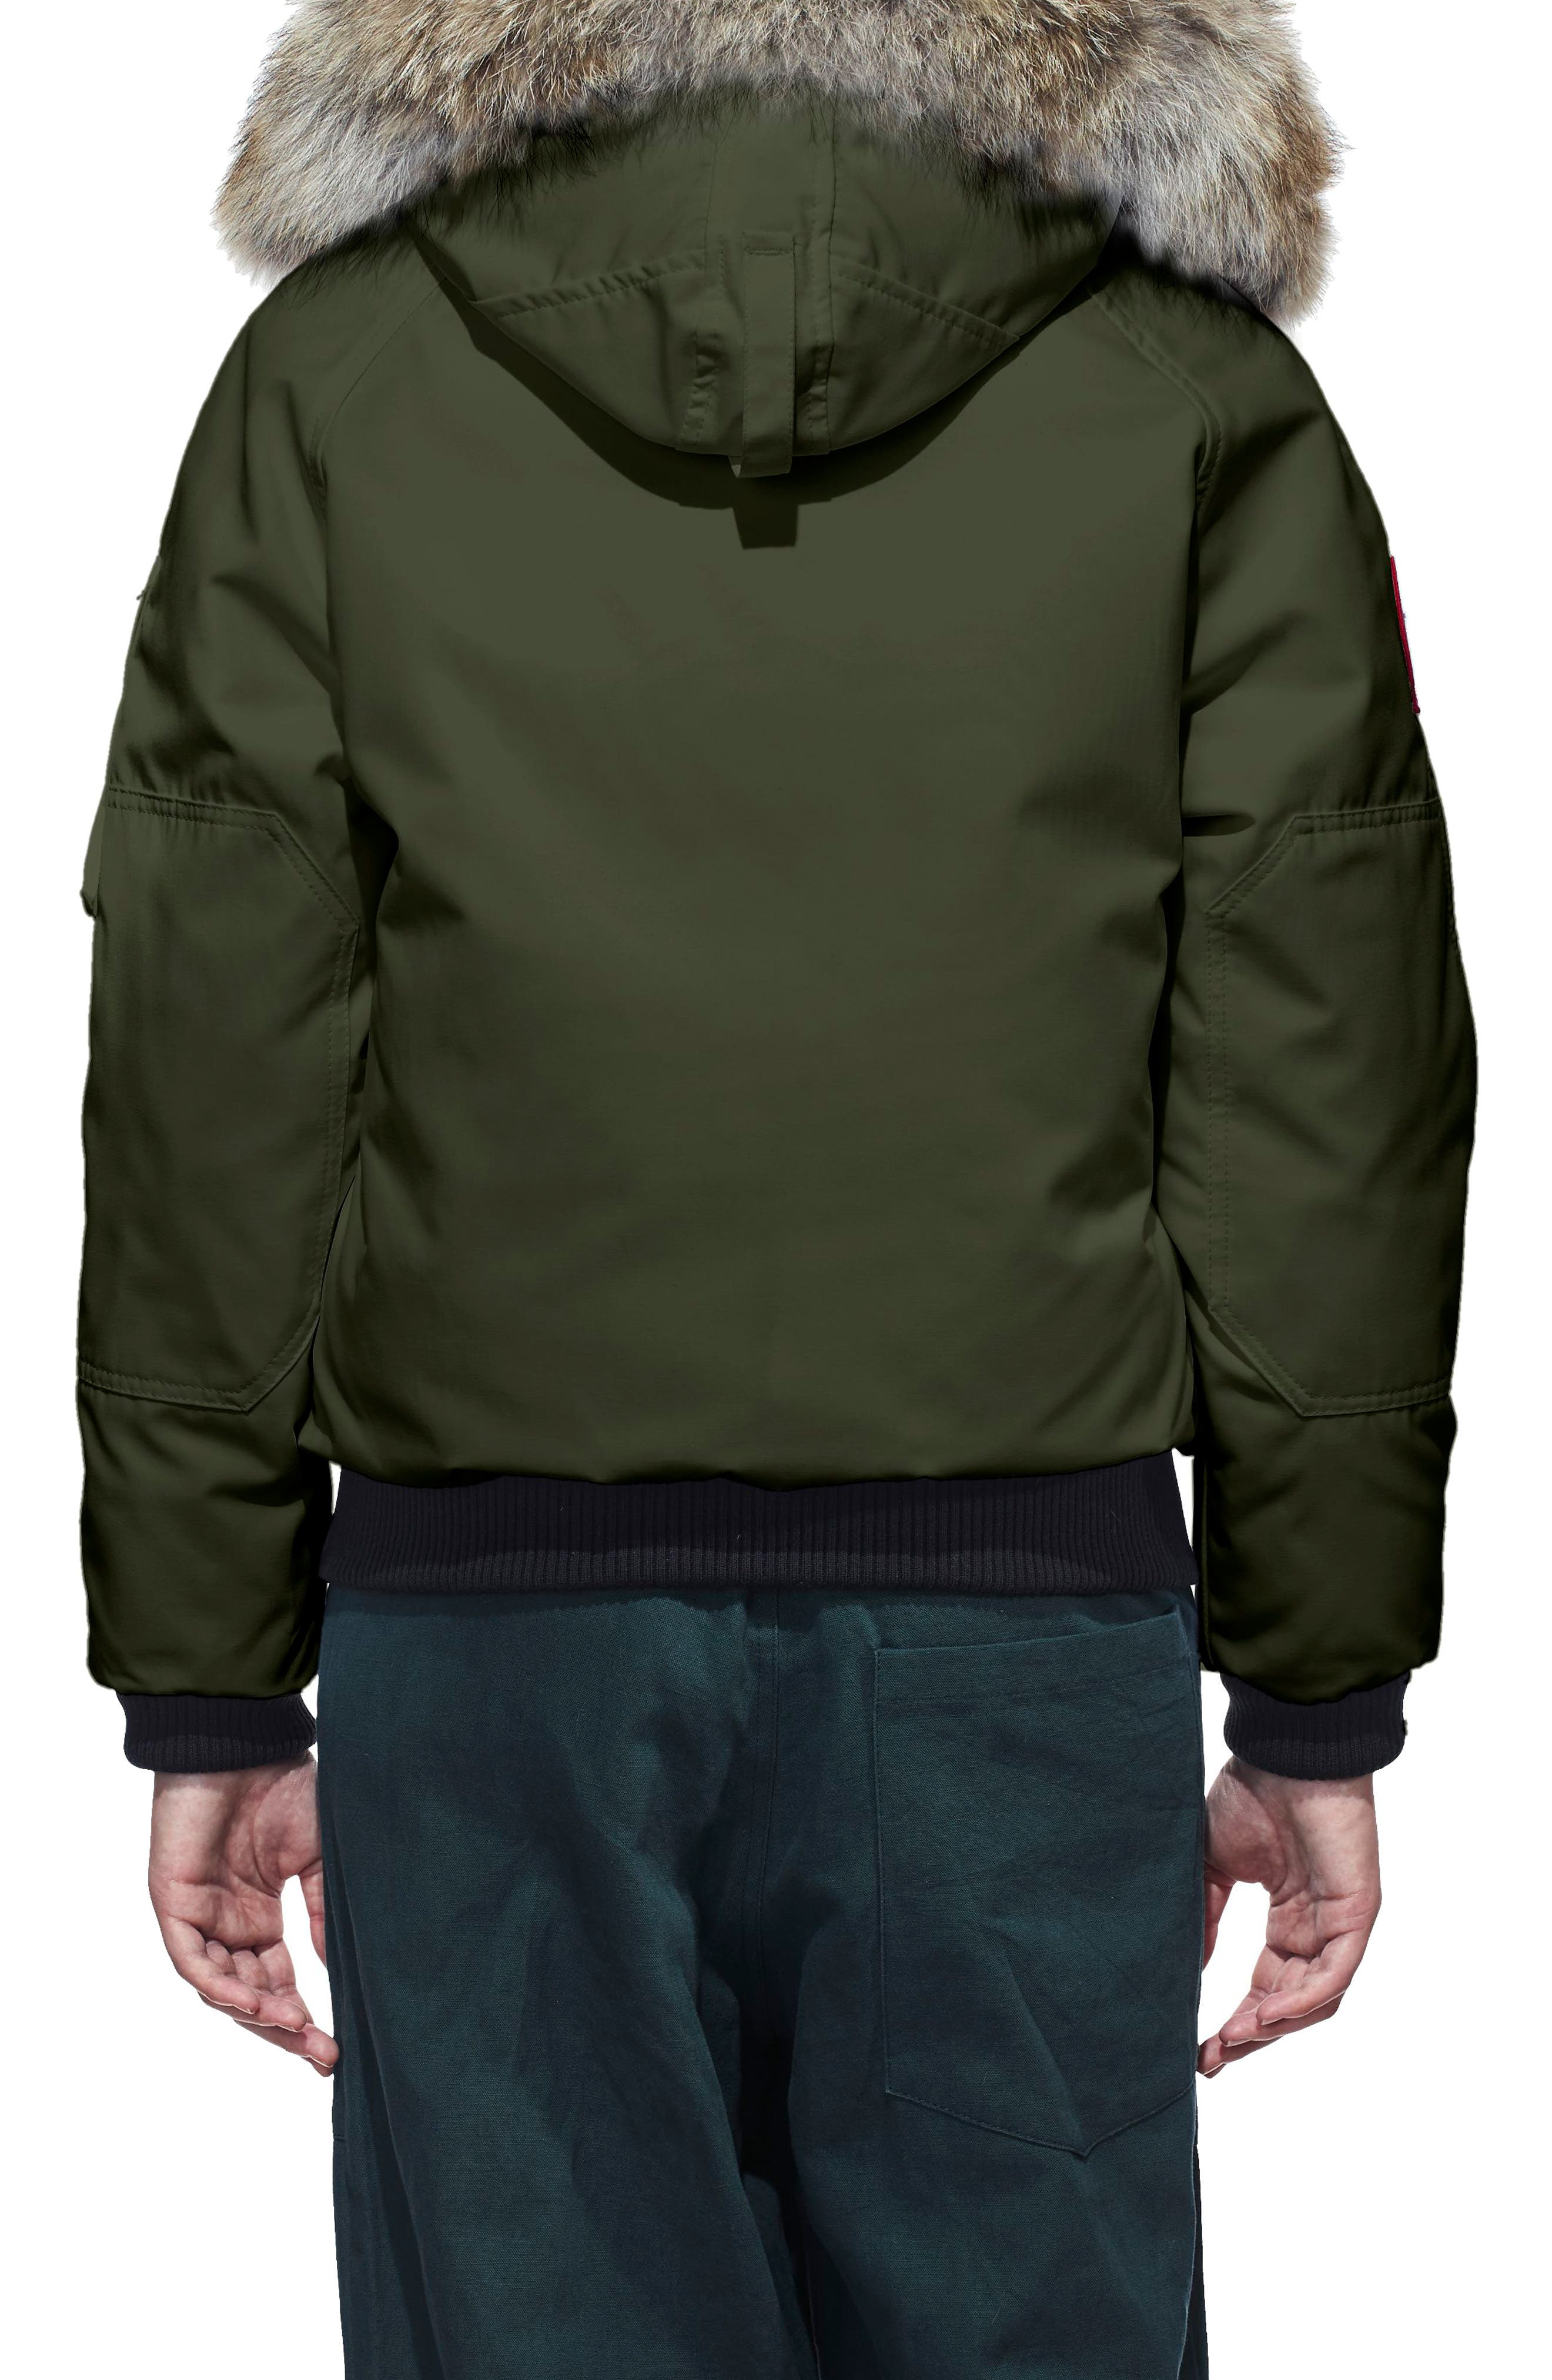 Chilliwack Hooded Down Bomber Jacket with Genuine Coyote Fur Trim,                             Alternate thumbnail 2, color,                             MILITARY GREEN